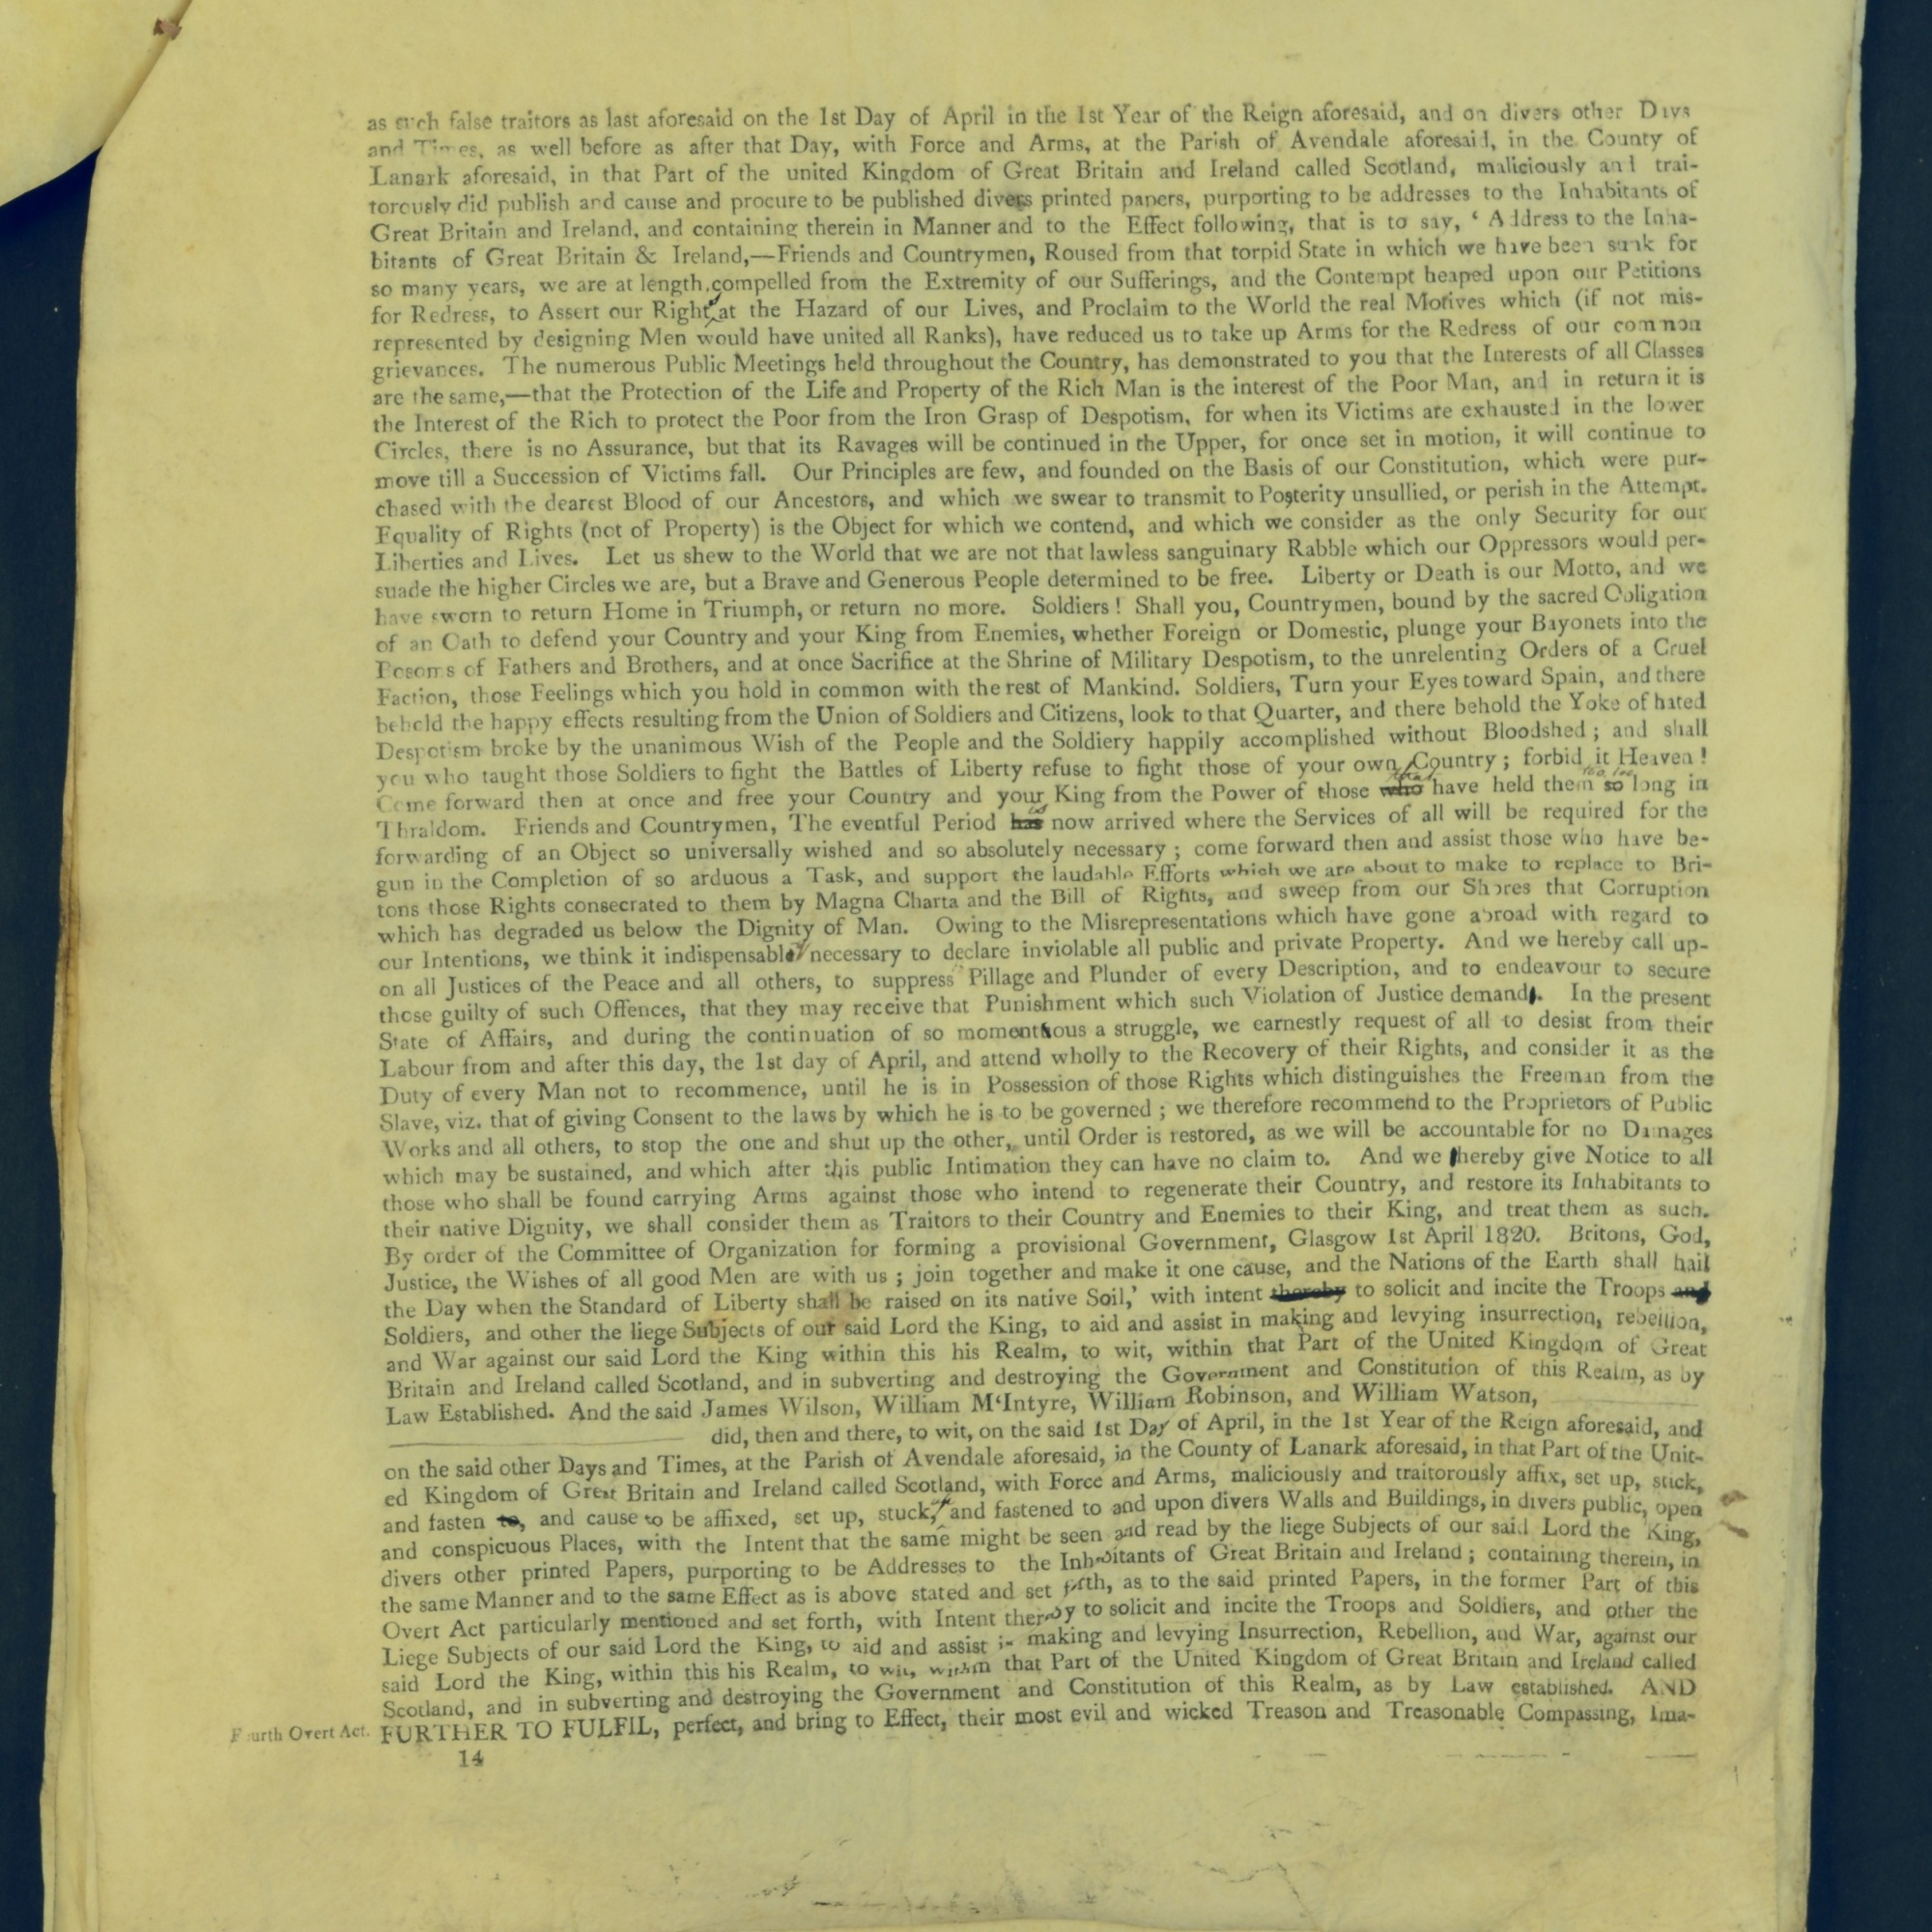 Treason Trials for the County of Lanark, the Strathaven Case. True bills found against four men, James Wilson, William McIntyre, William Robinson and William Watson. National Records of Scotland, Crown copyright, JC21/3/4 p14